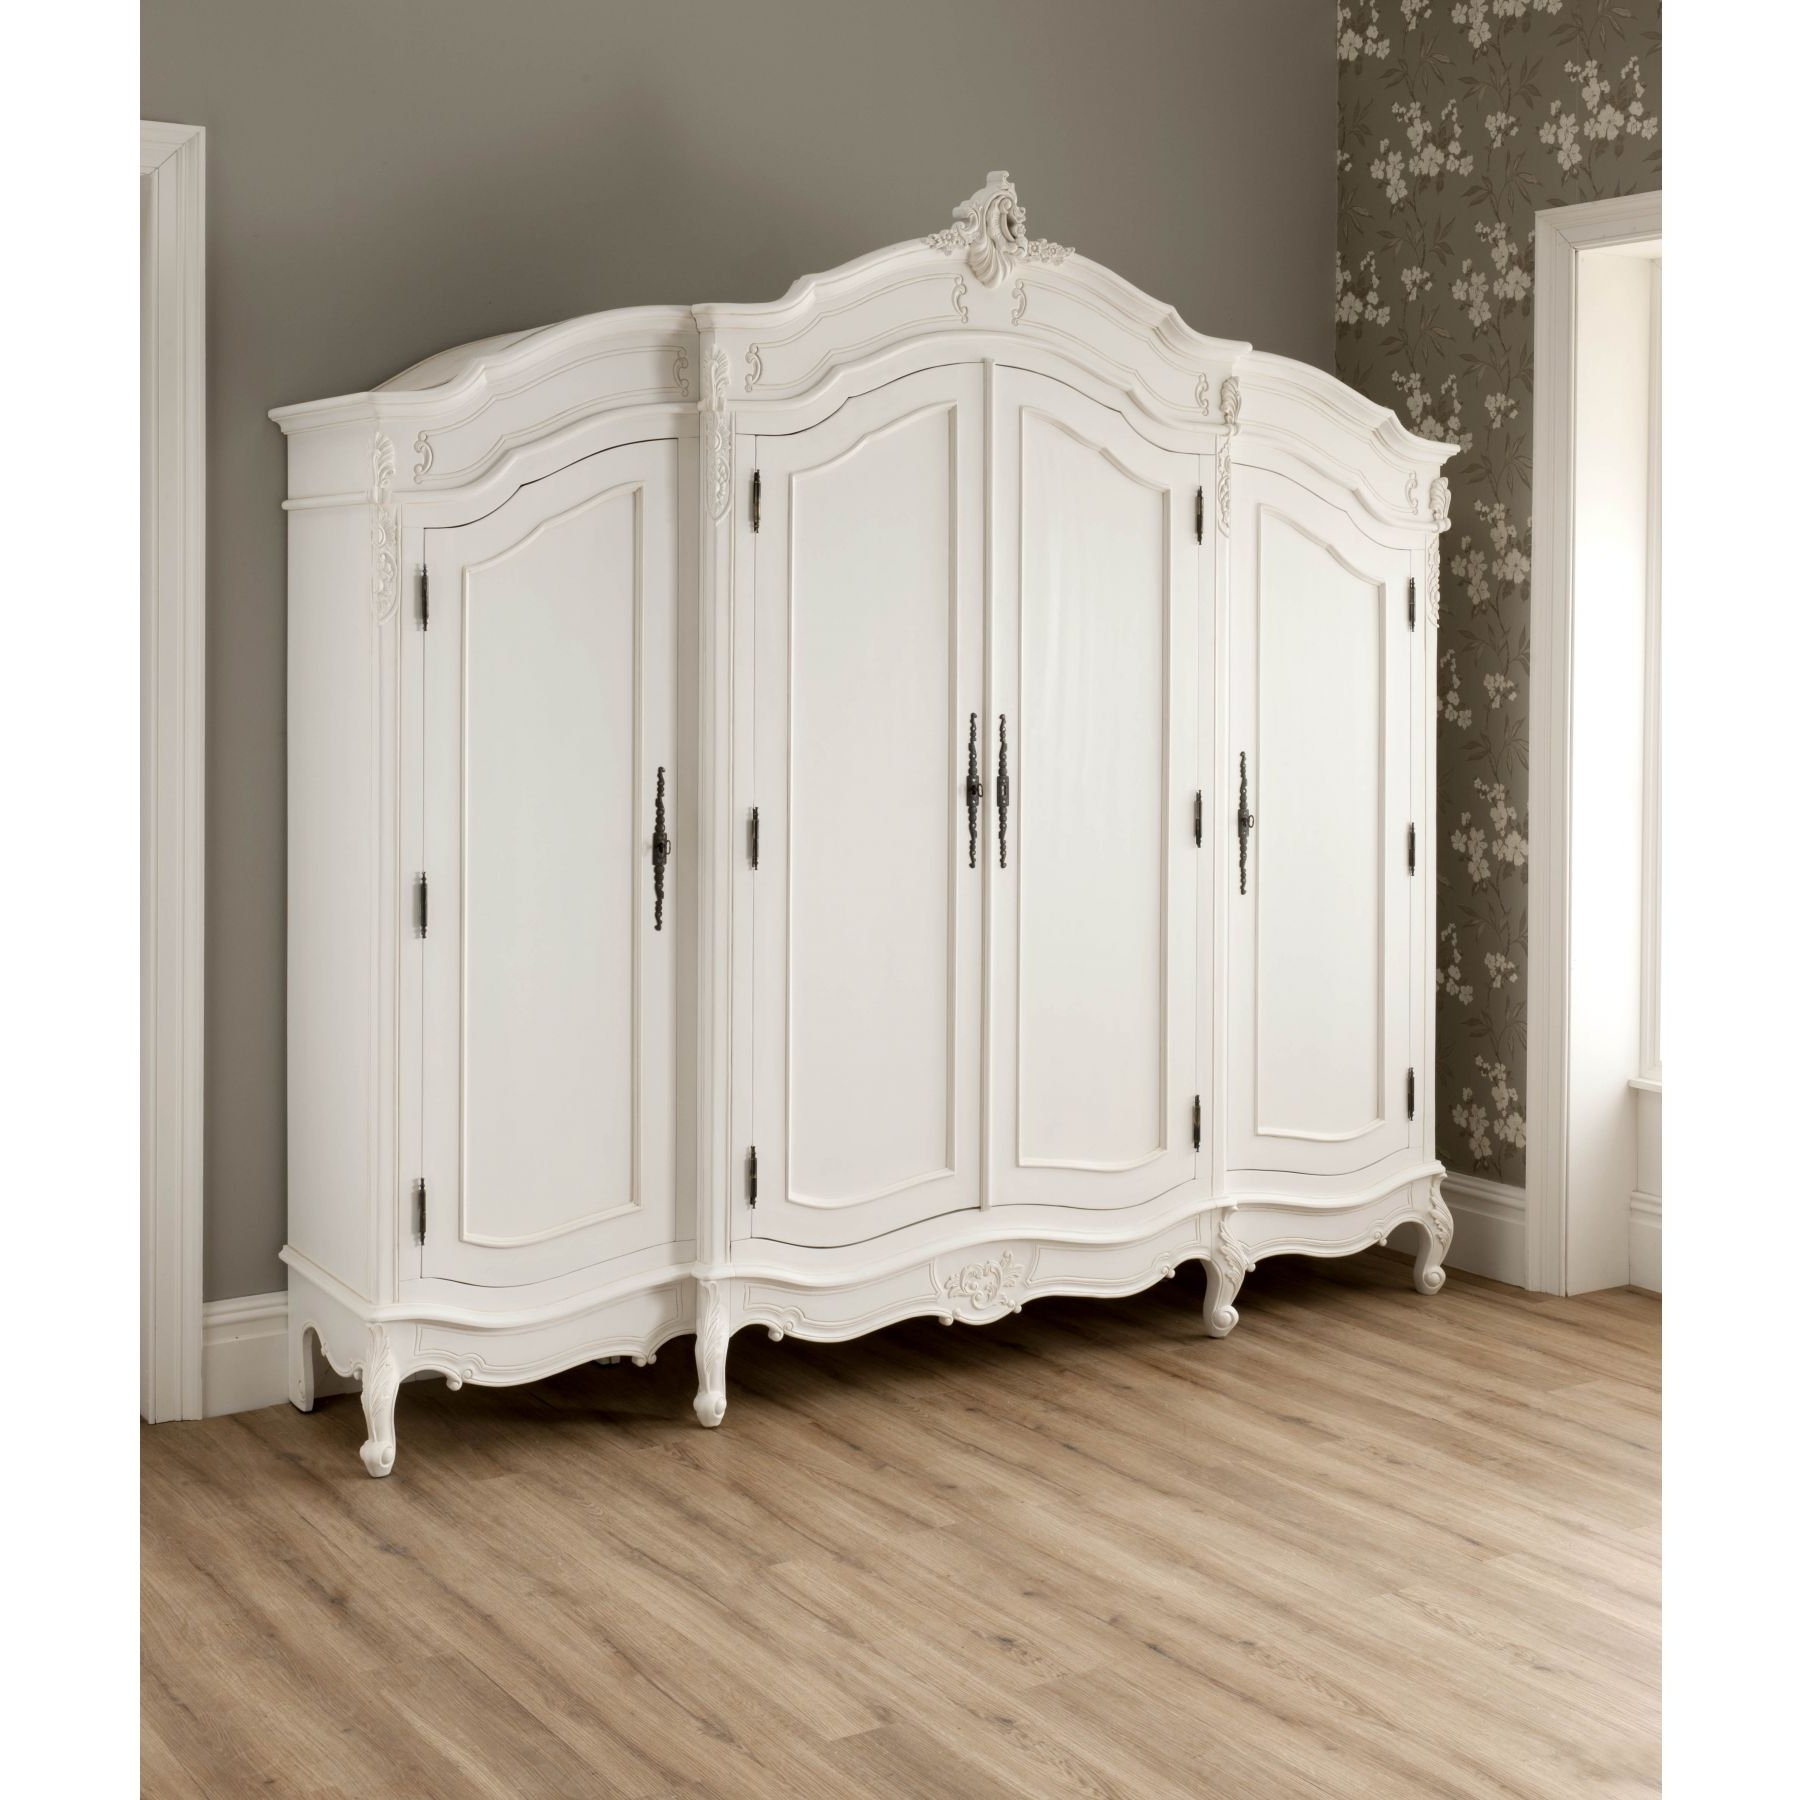 White French Wardrobes With Fashionable La Rochelle Antique French Wardrobe Working Well Alongside Our (View 14 of 15)